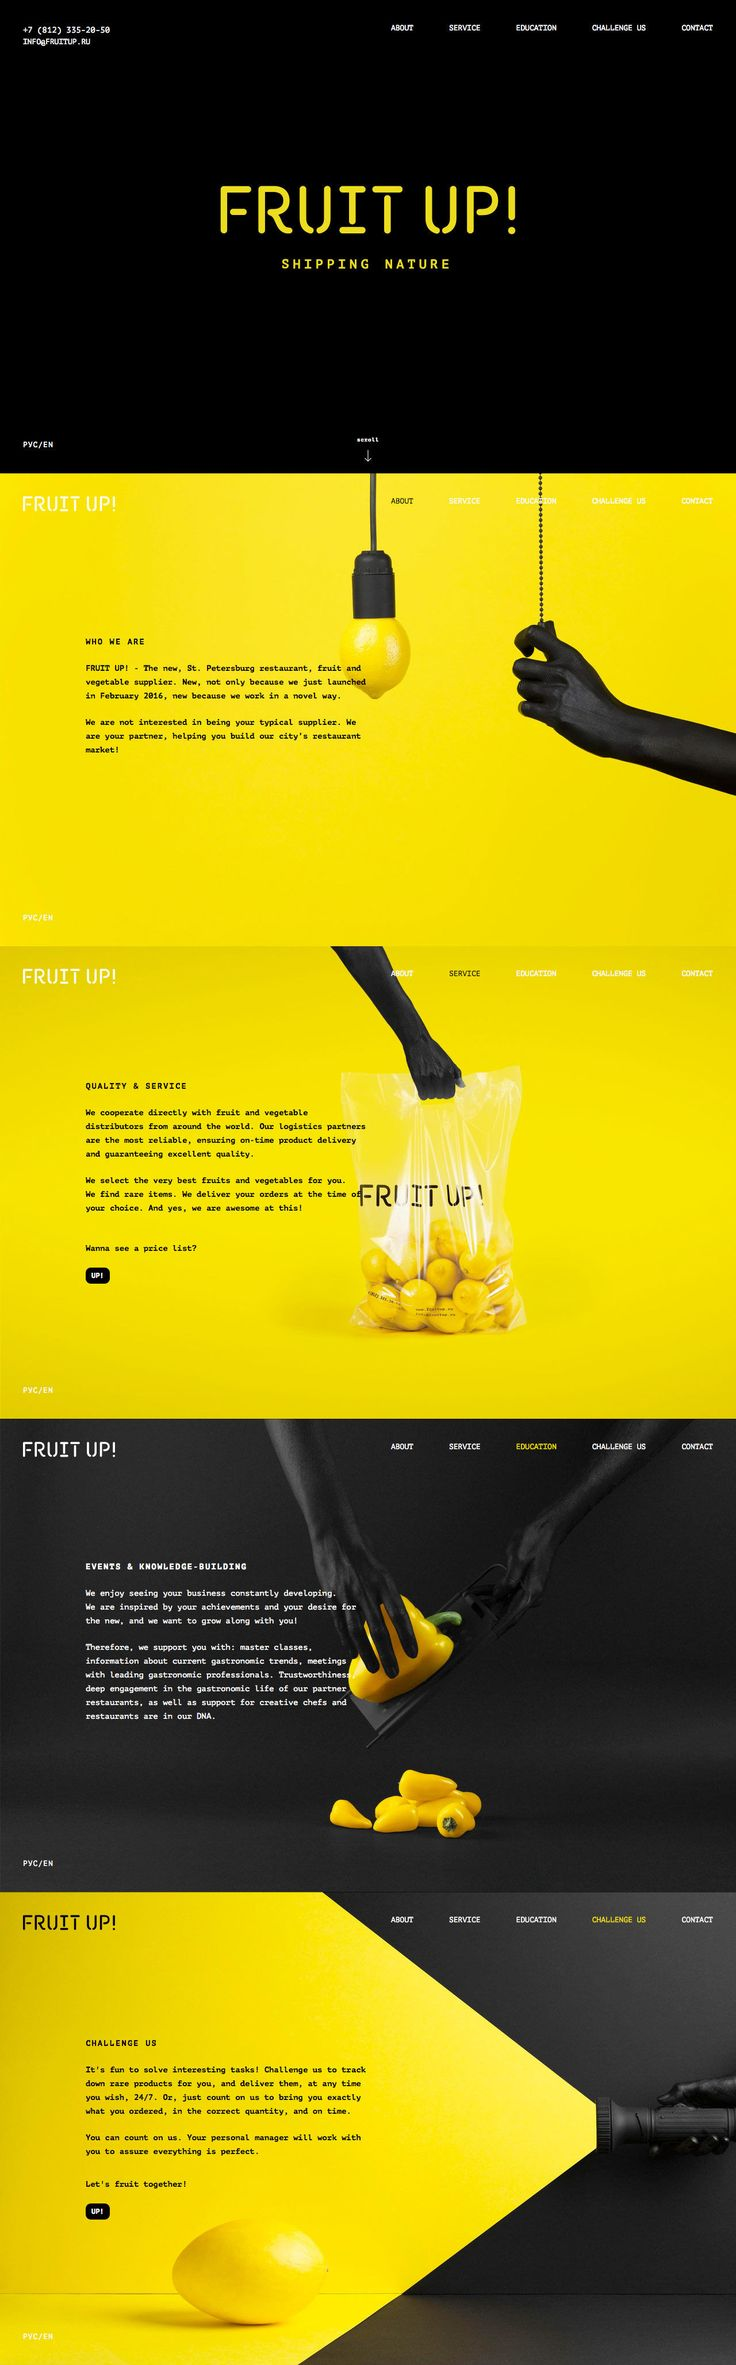 FRUIT UP! (More web design inspiration at topdesigninspiration.com) #design #web…